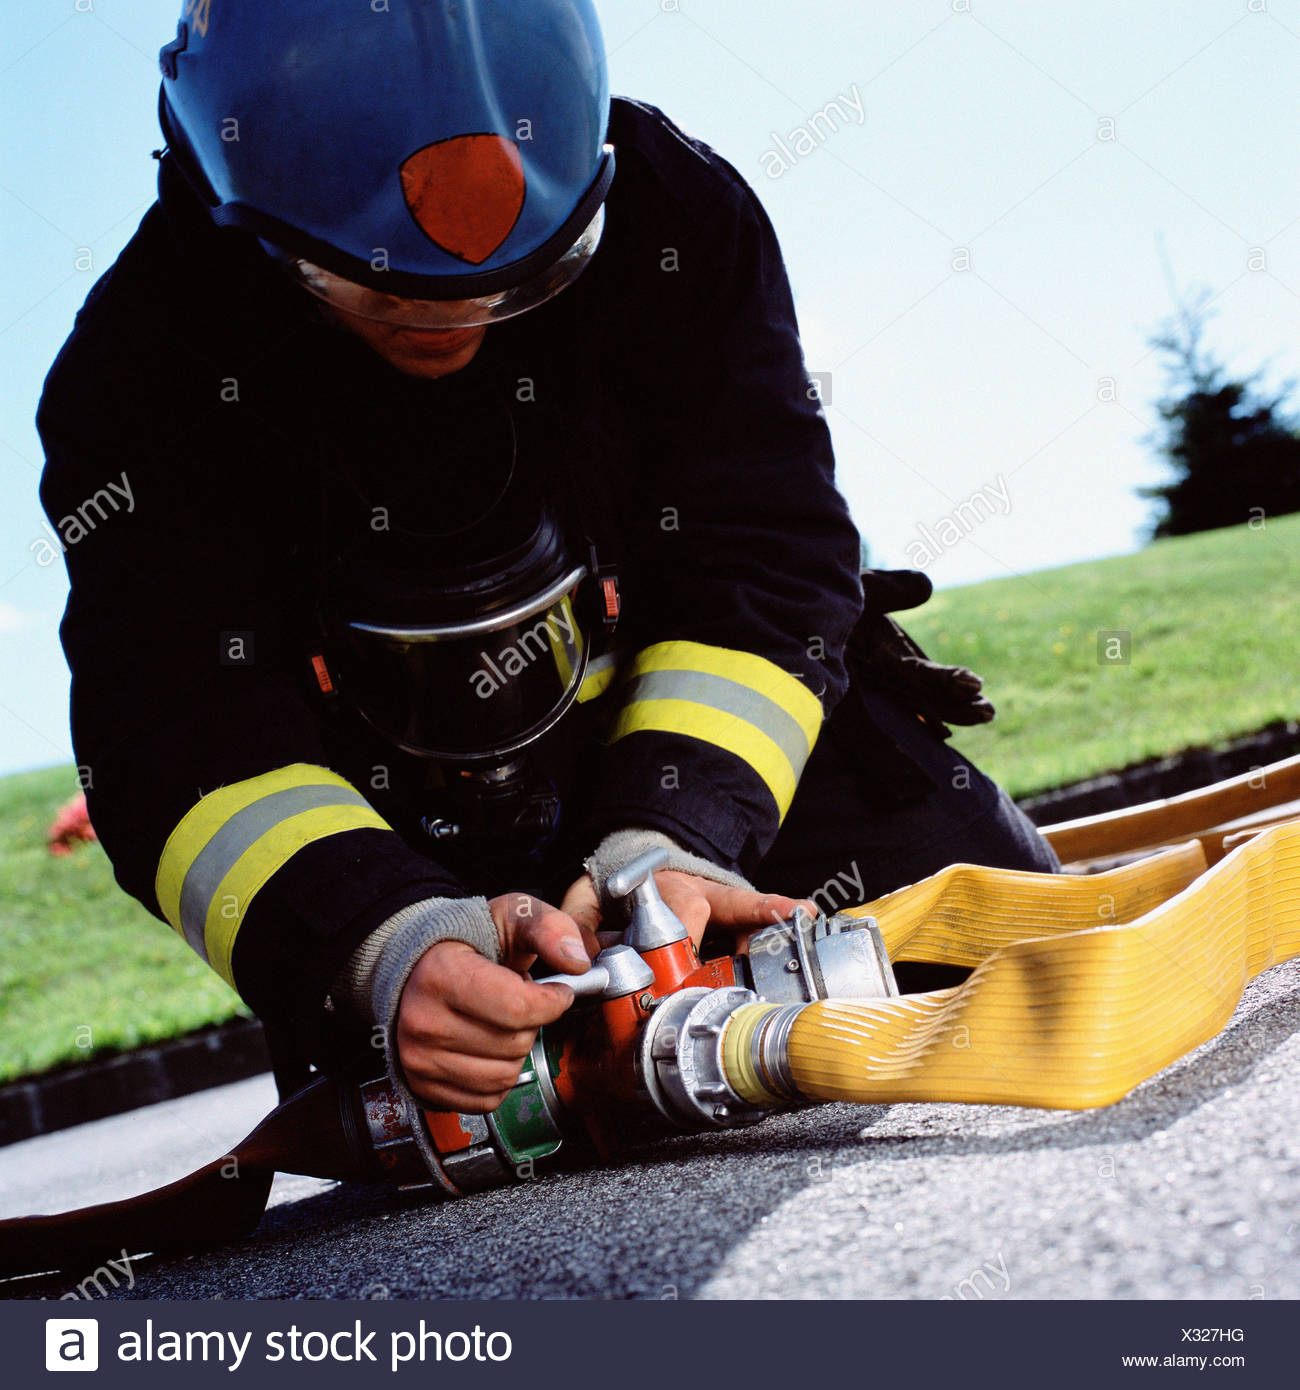 Fireman connecting hoses - Stock Image